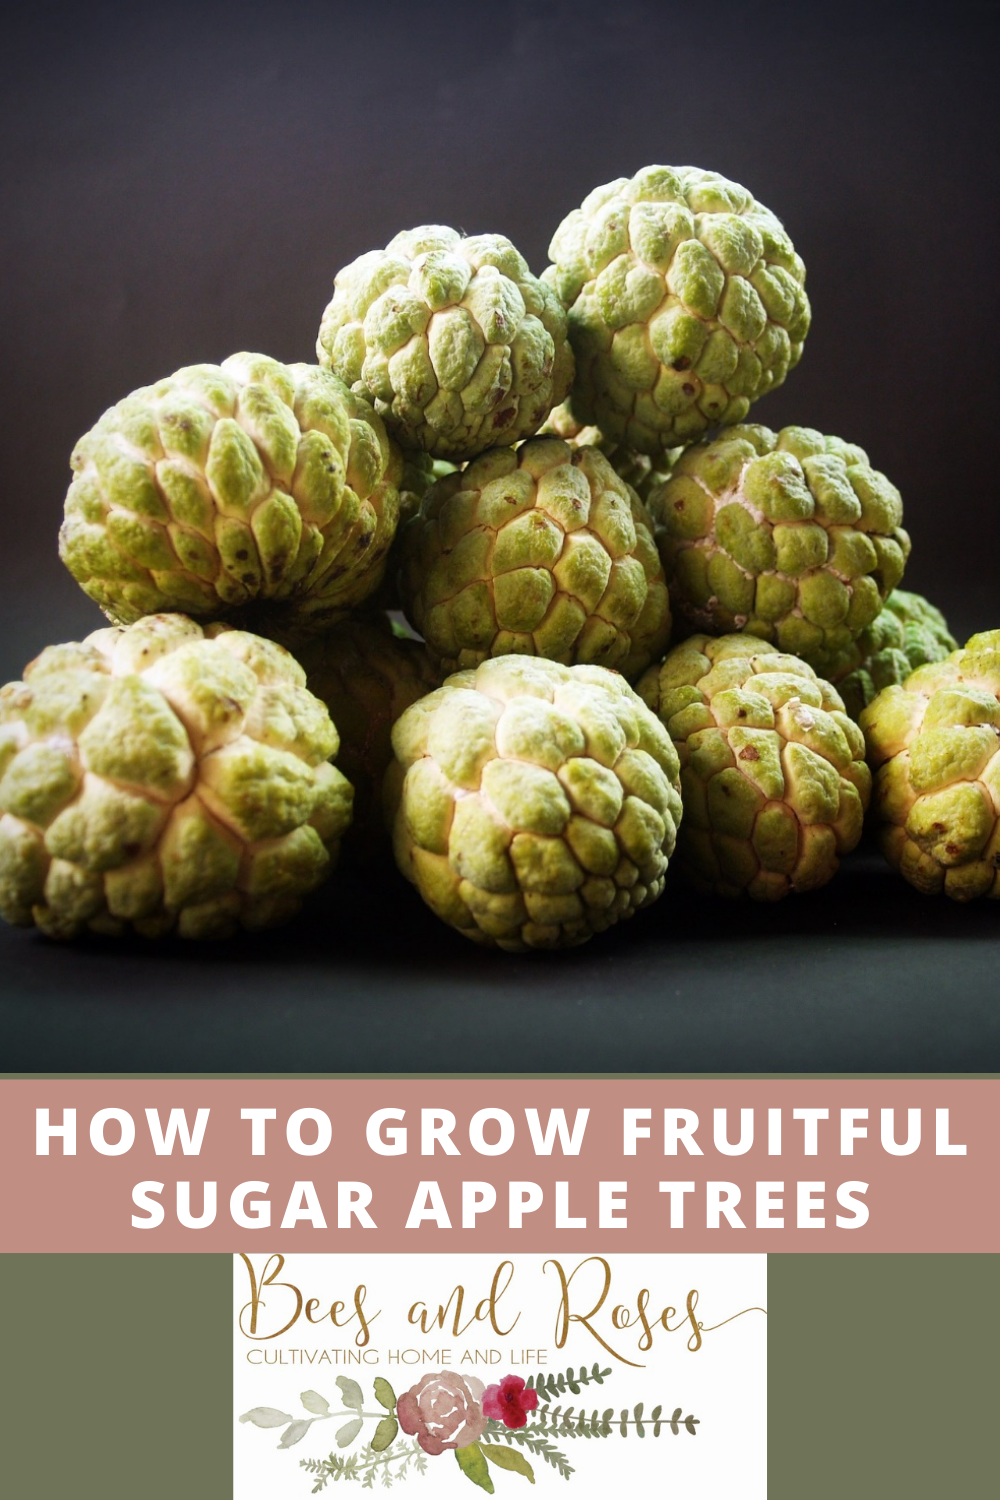 Beesandroses.com makes gardening accessible to people of all skill levels! Find out what you should be growing and how to let your plants thrive! Check out all you need to know before growing sugar apple trees!